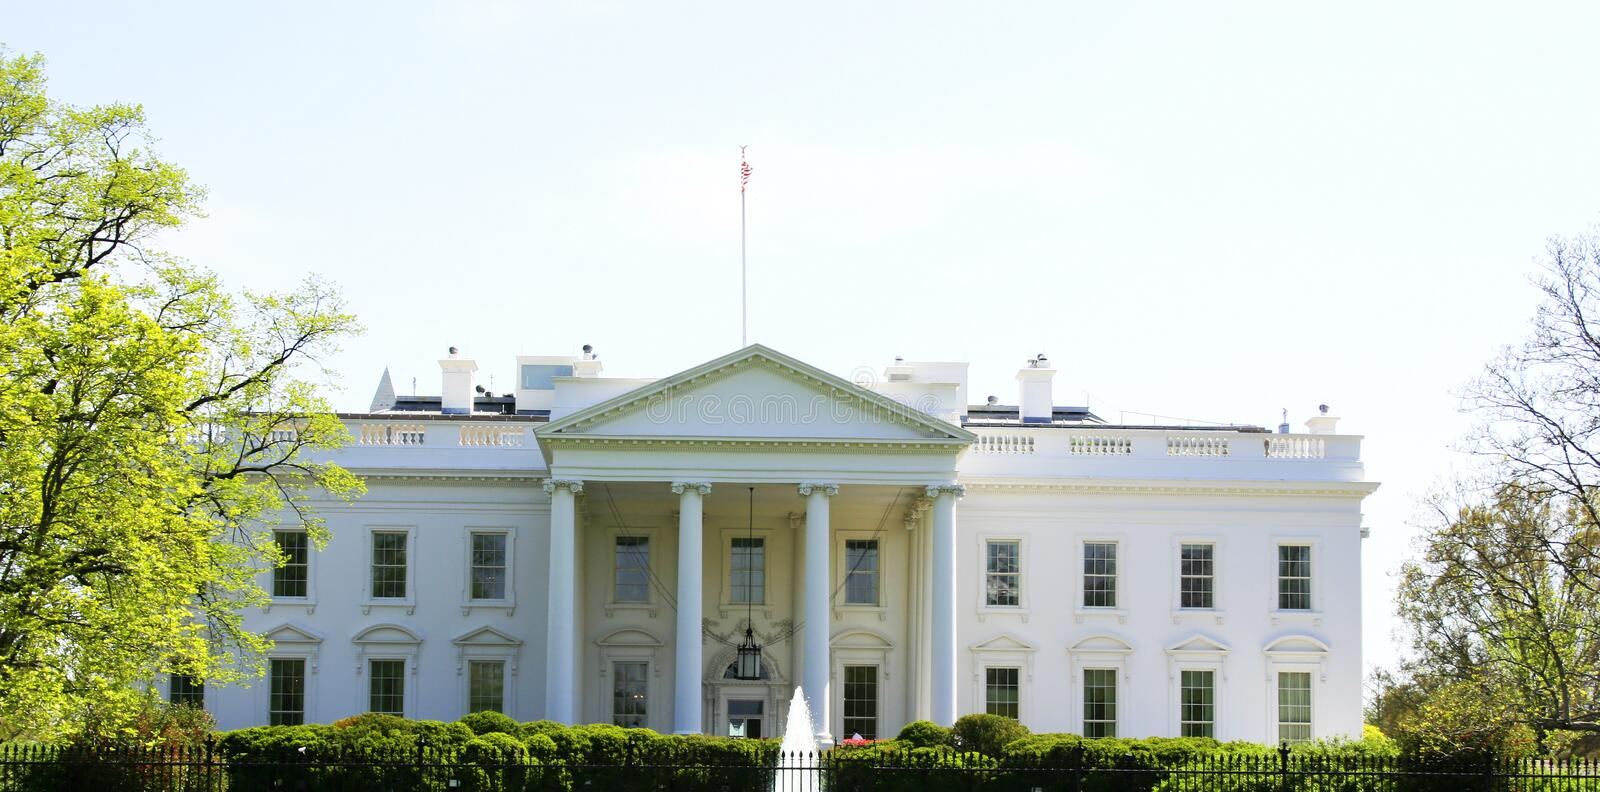 Download White house facade stock image. Image of freeze, patriotic - 4440405